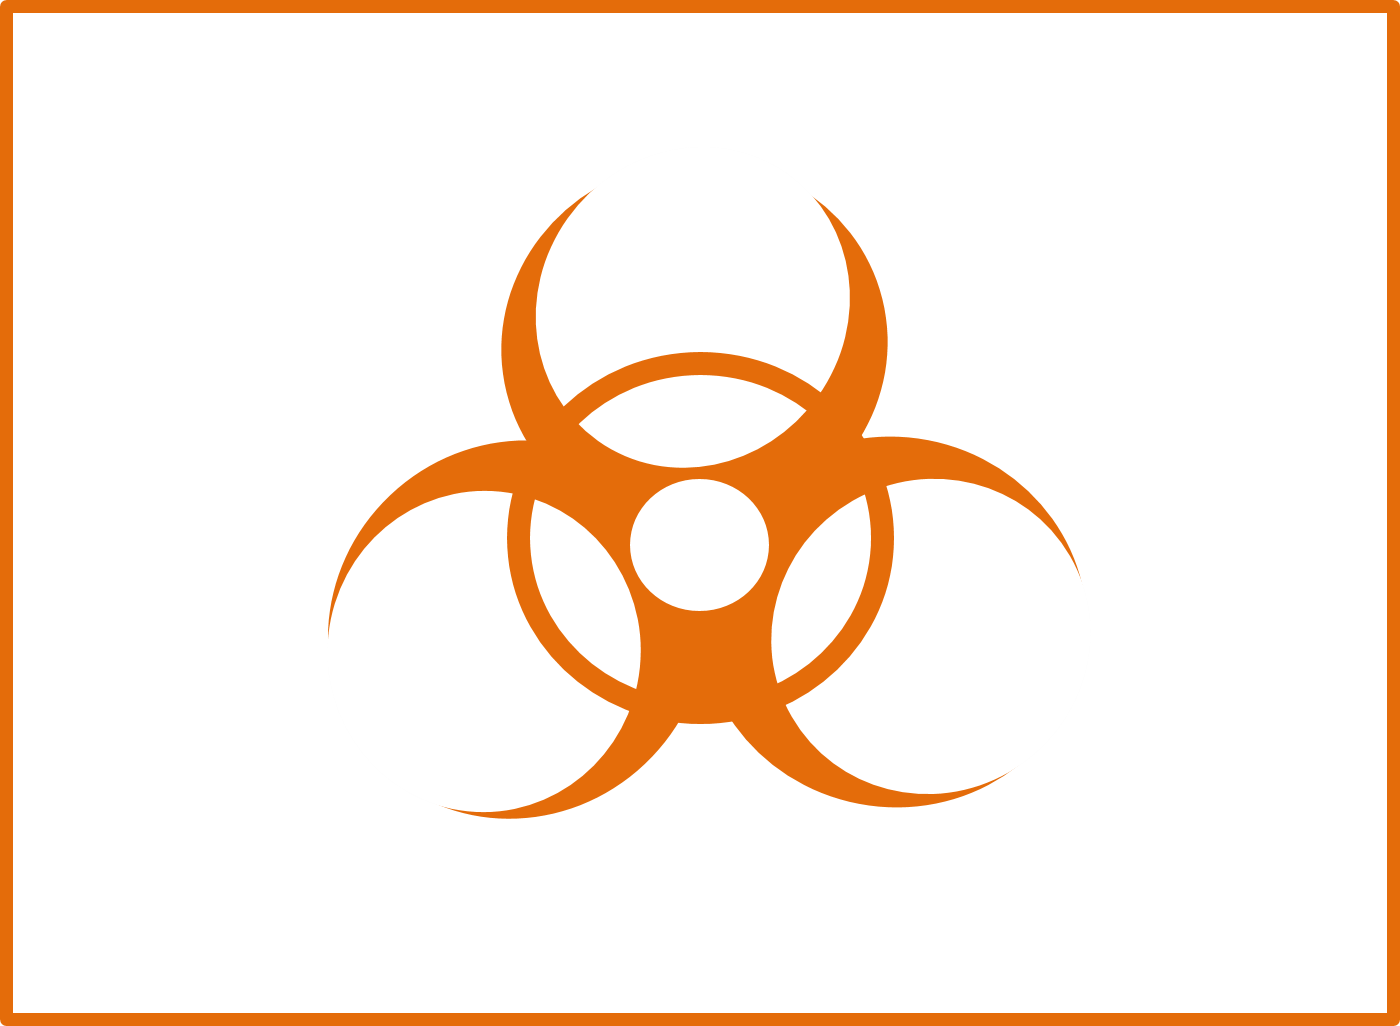 Regulated biohazardous materials ibc office of the vice about the institutional biosafety committee biohazard symbol biocorpaavc